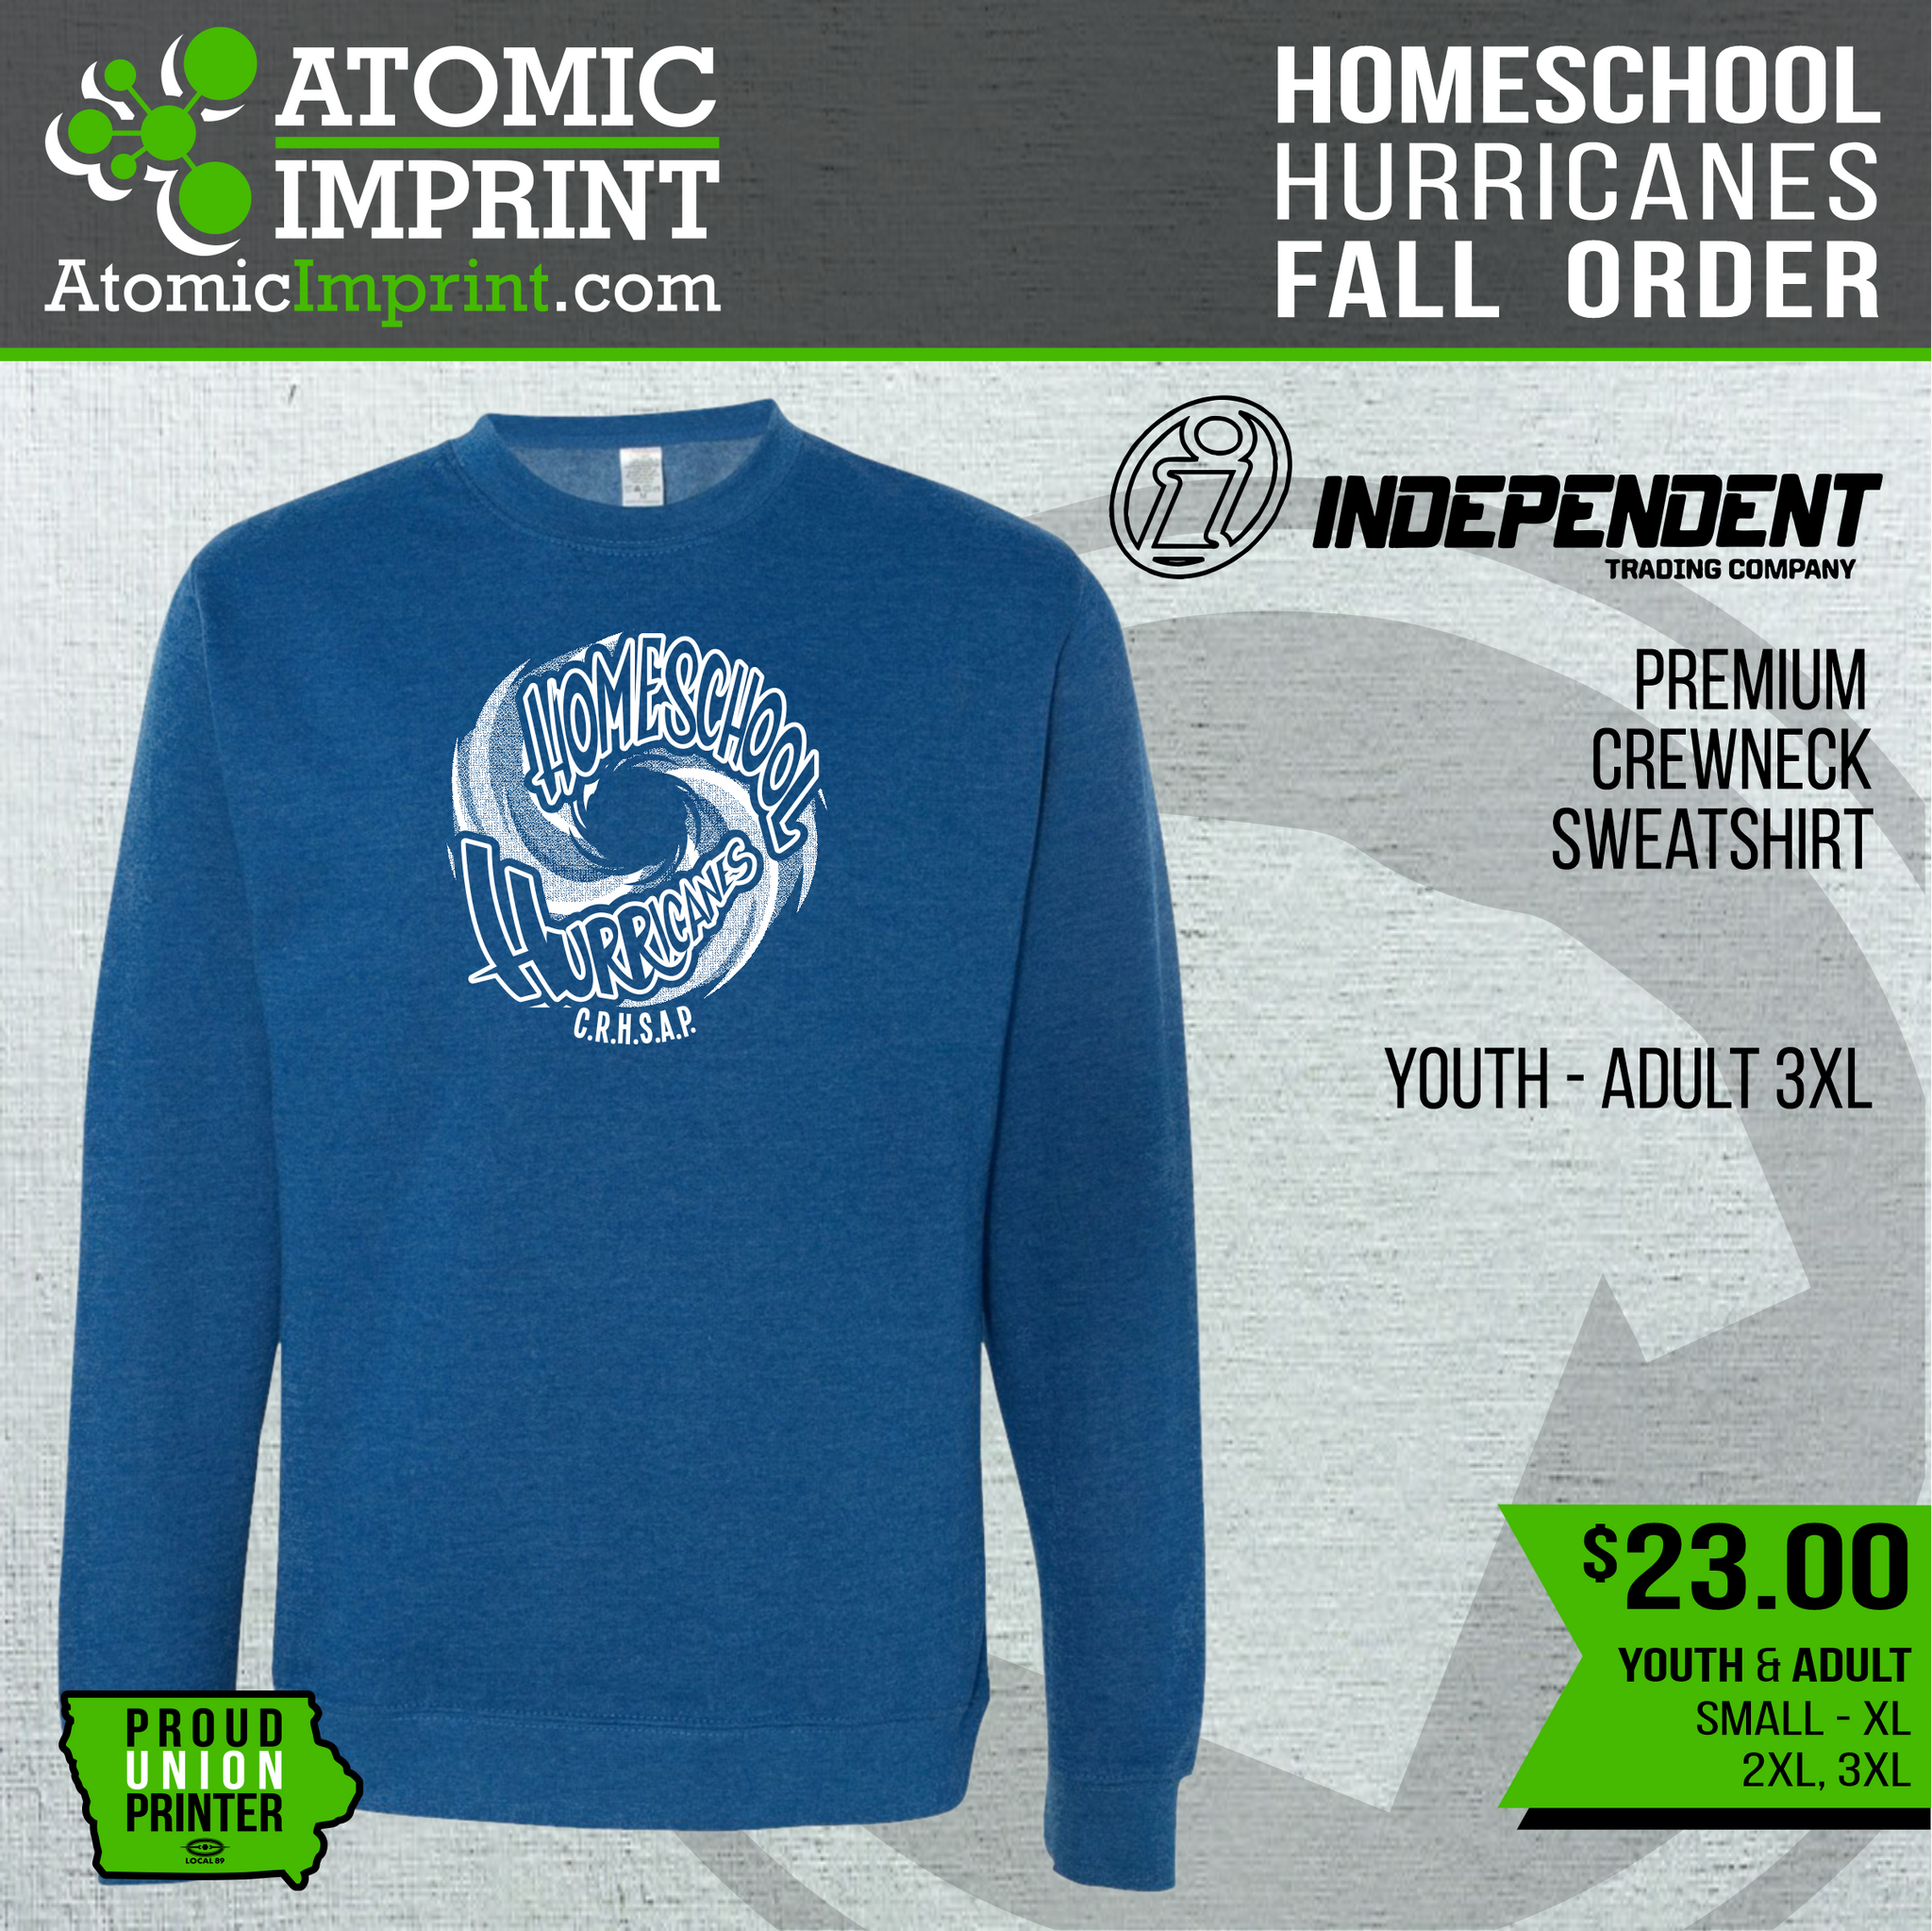 Homeschool Hurricanes - Premium Crewneck Sweatshirt